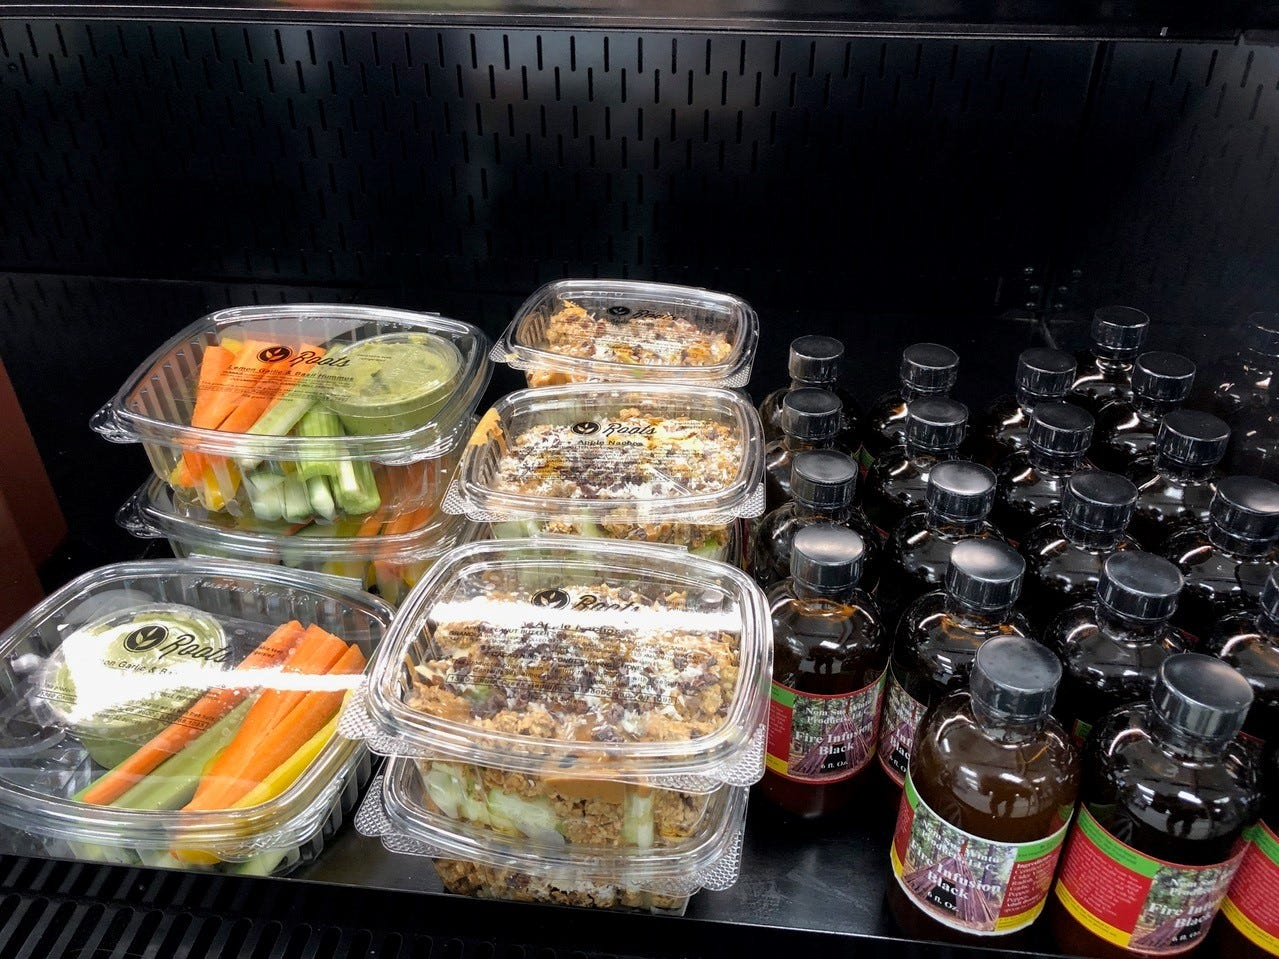 Some of the grab-and-go items at Roots Juice Bar on Pine Street.